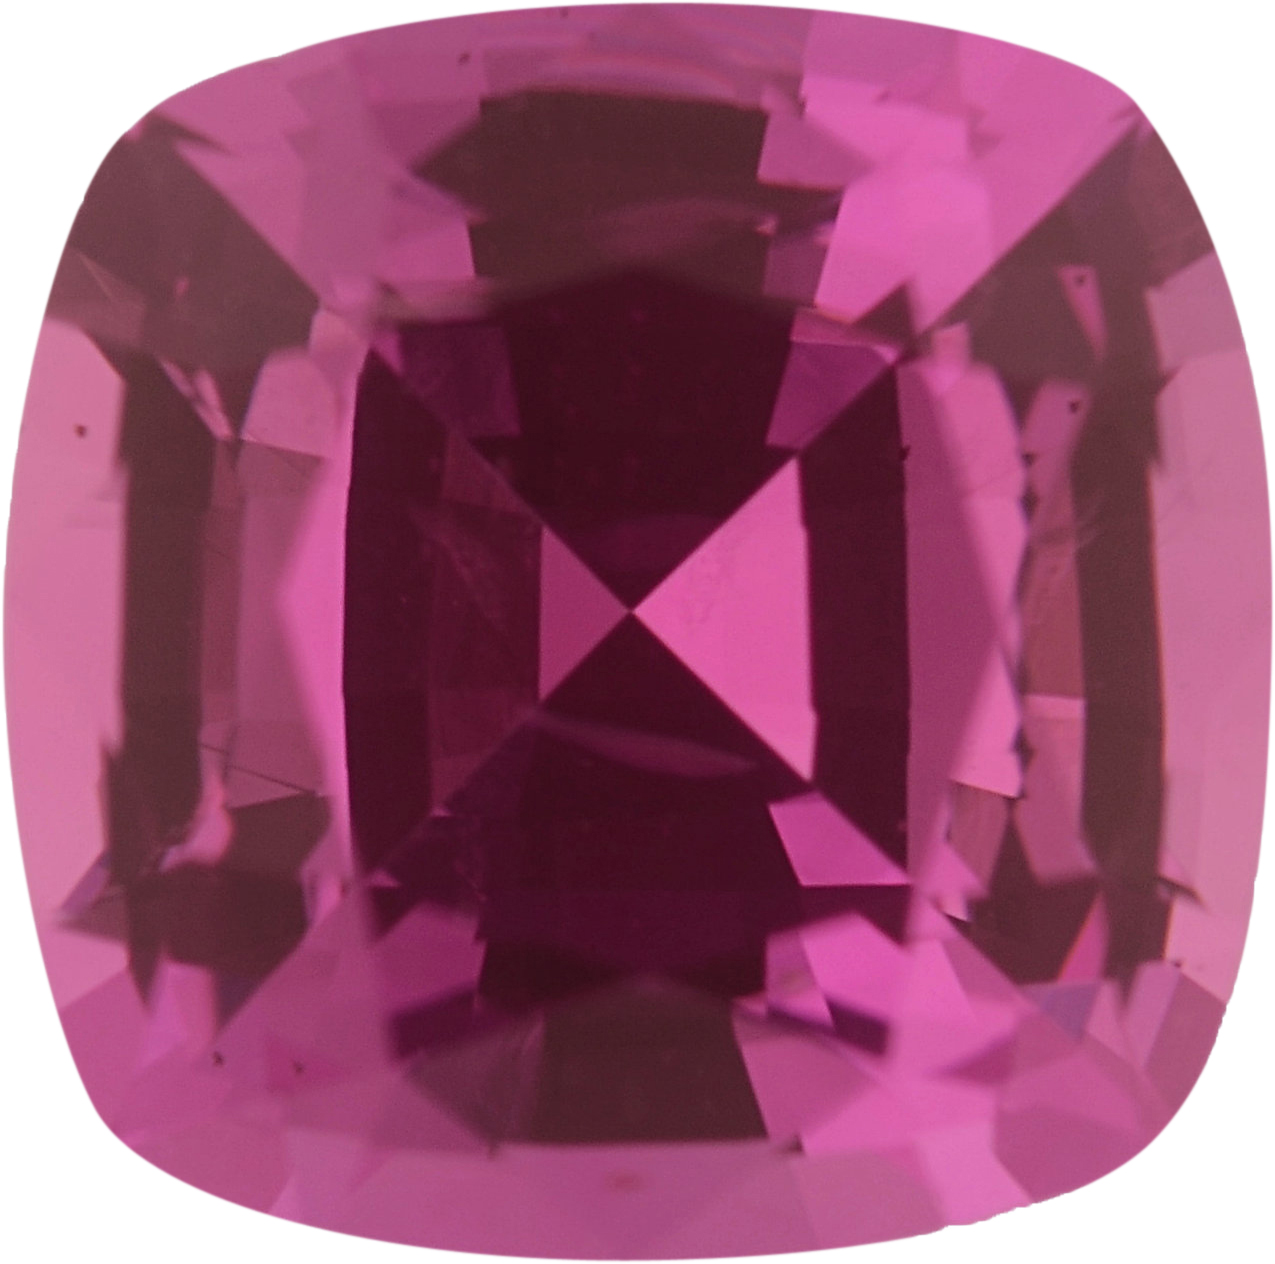 5.95 x 5.95 mm, Pink Loose Sapphire Gemstone in Antique Square Cut, 1.14 carats